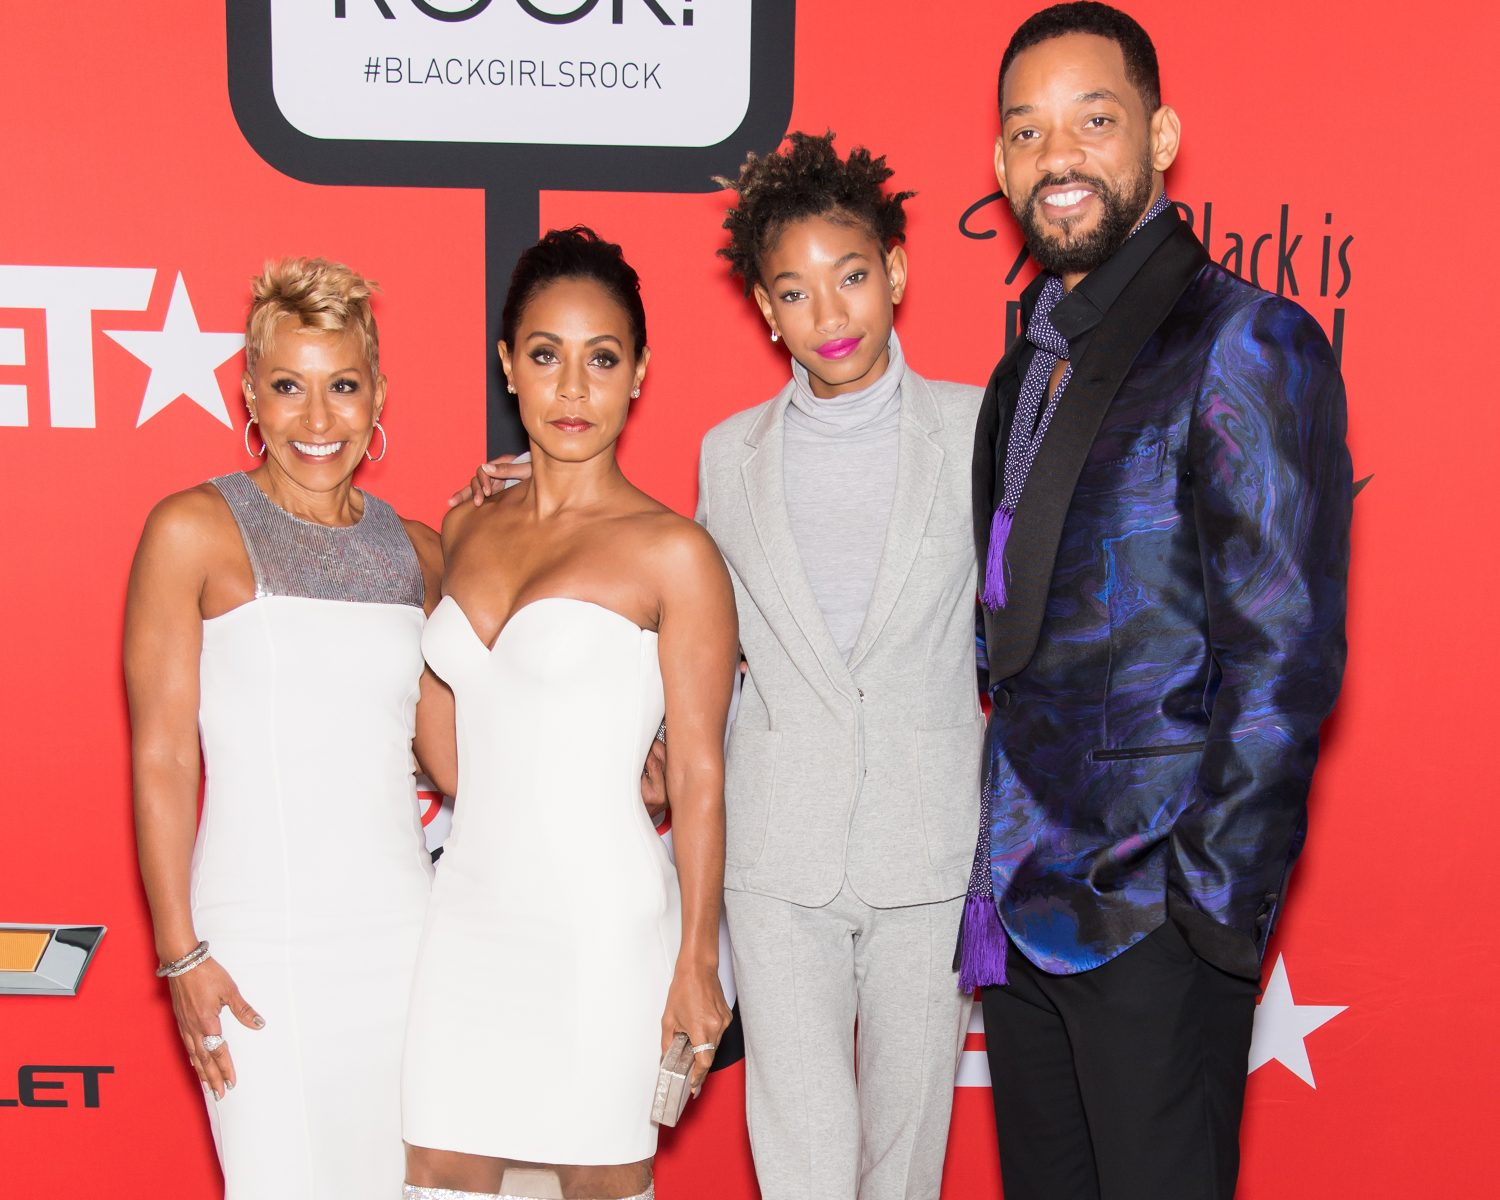 Jada Pinkett Smith Jada Pinkett Smith new pictures